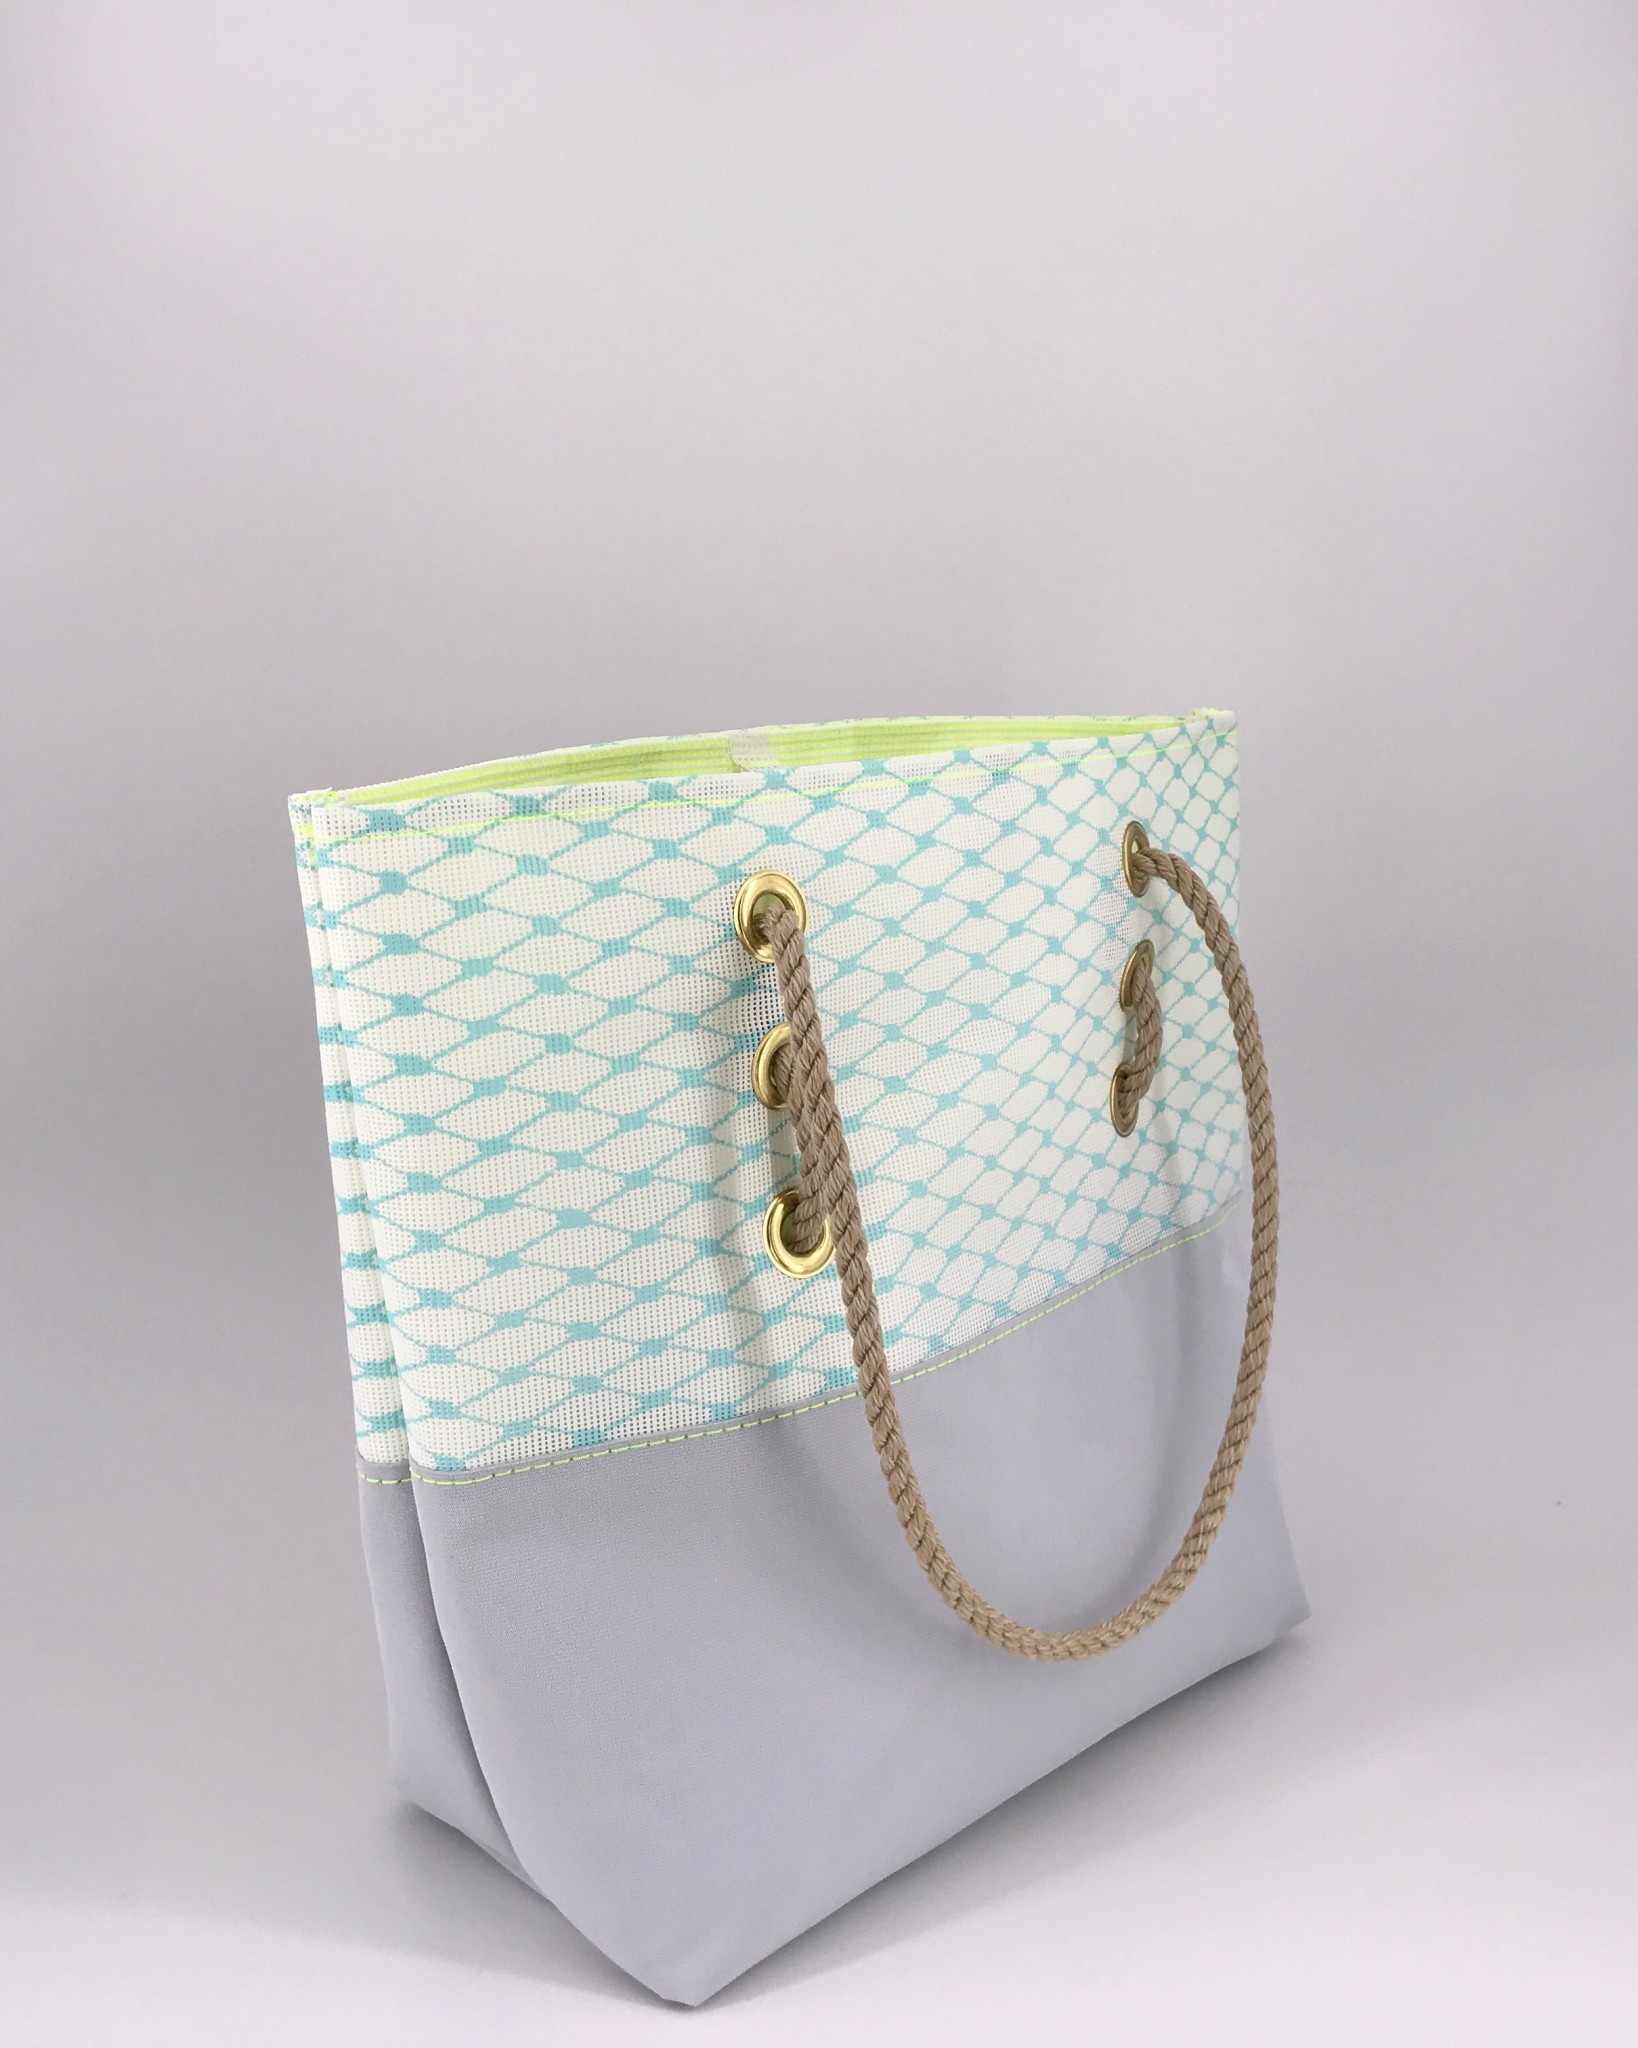 Alaina Marie ® Soothing Sea with Citron & Silver Tote